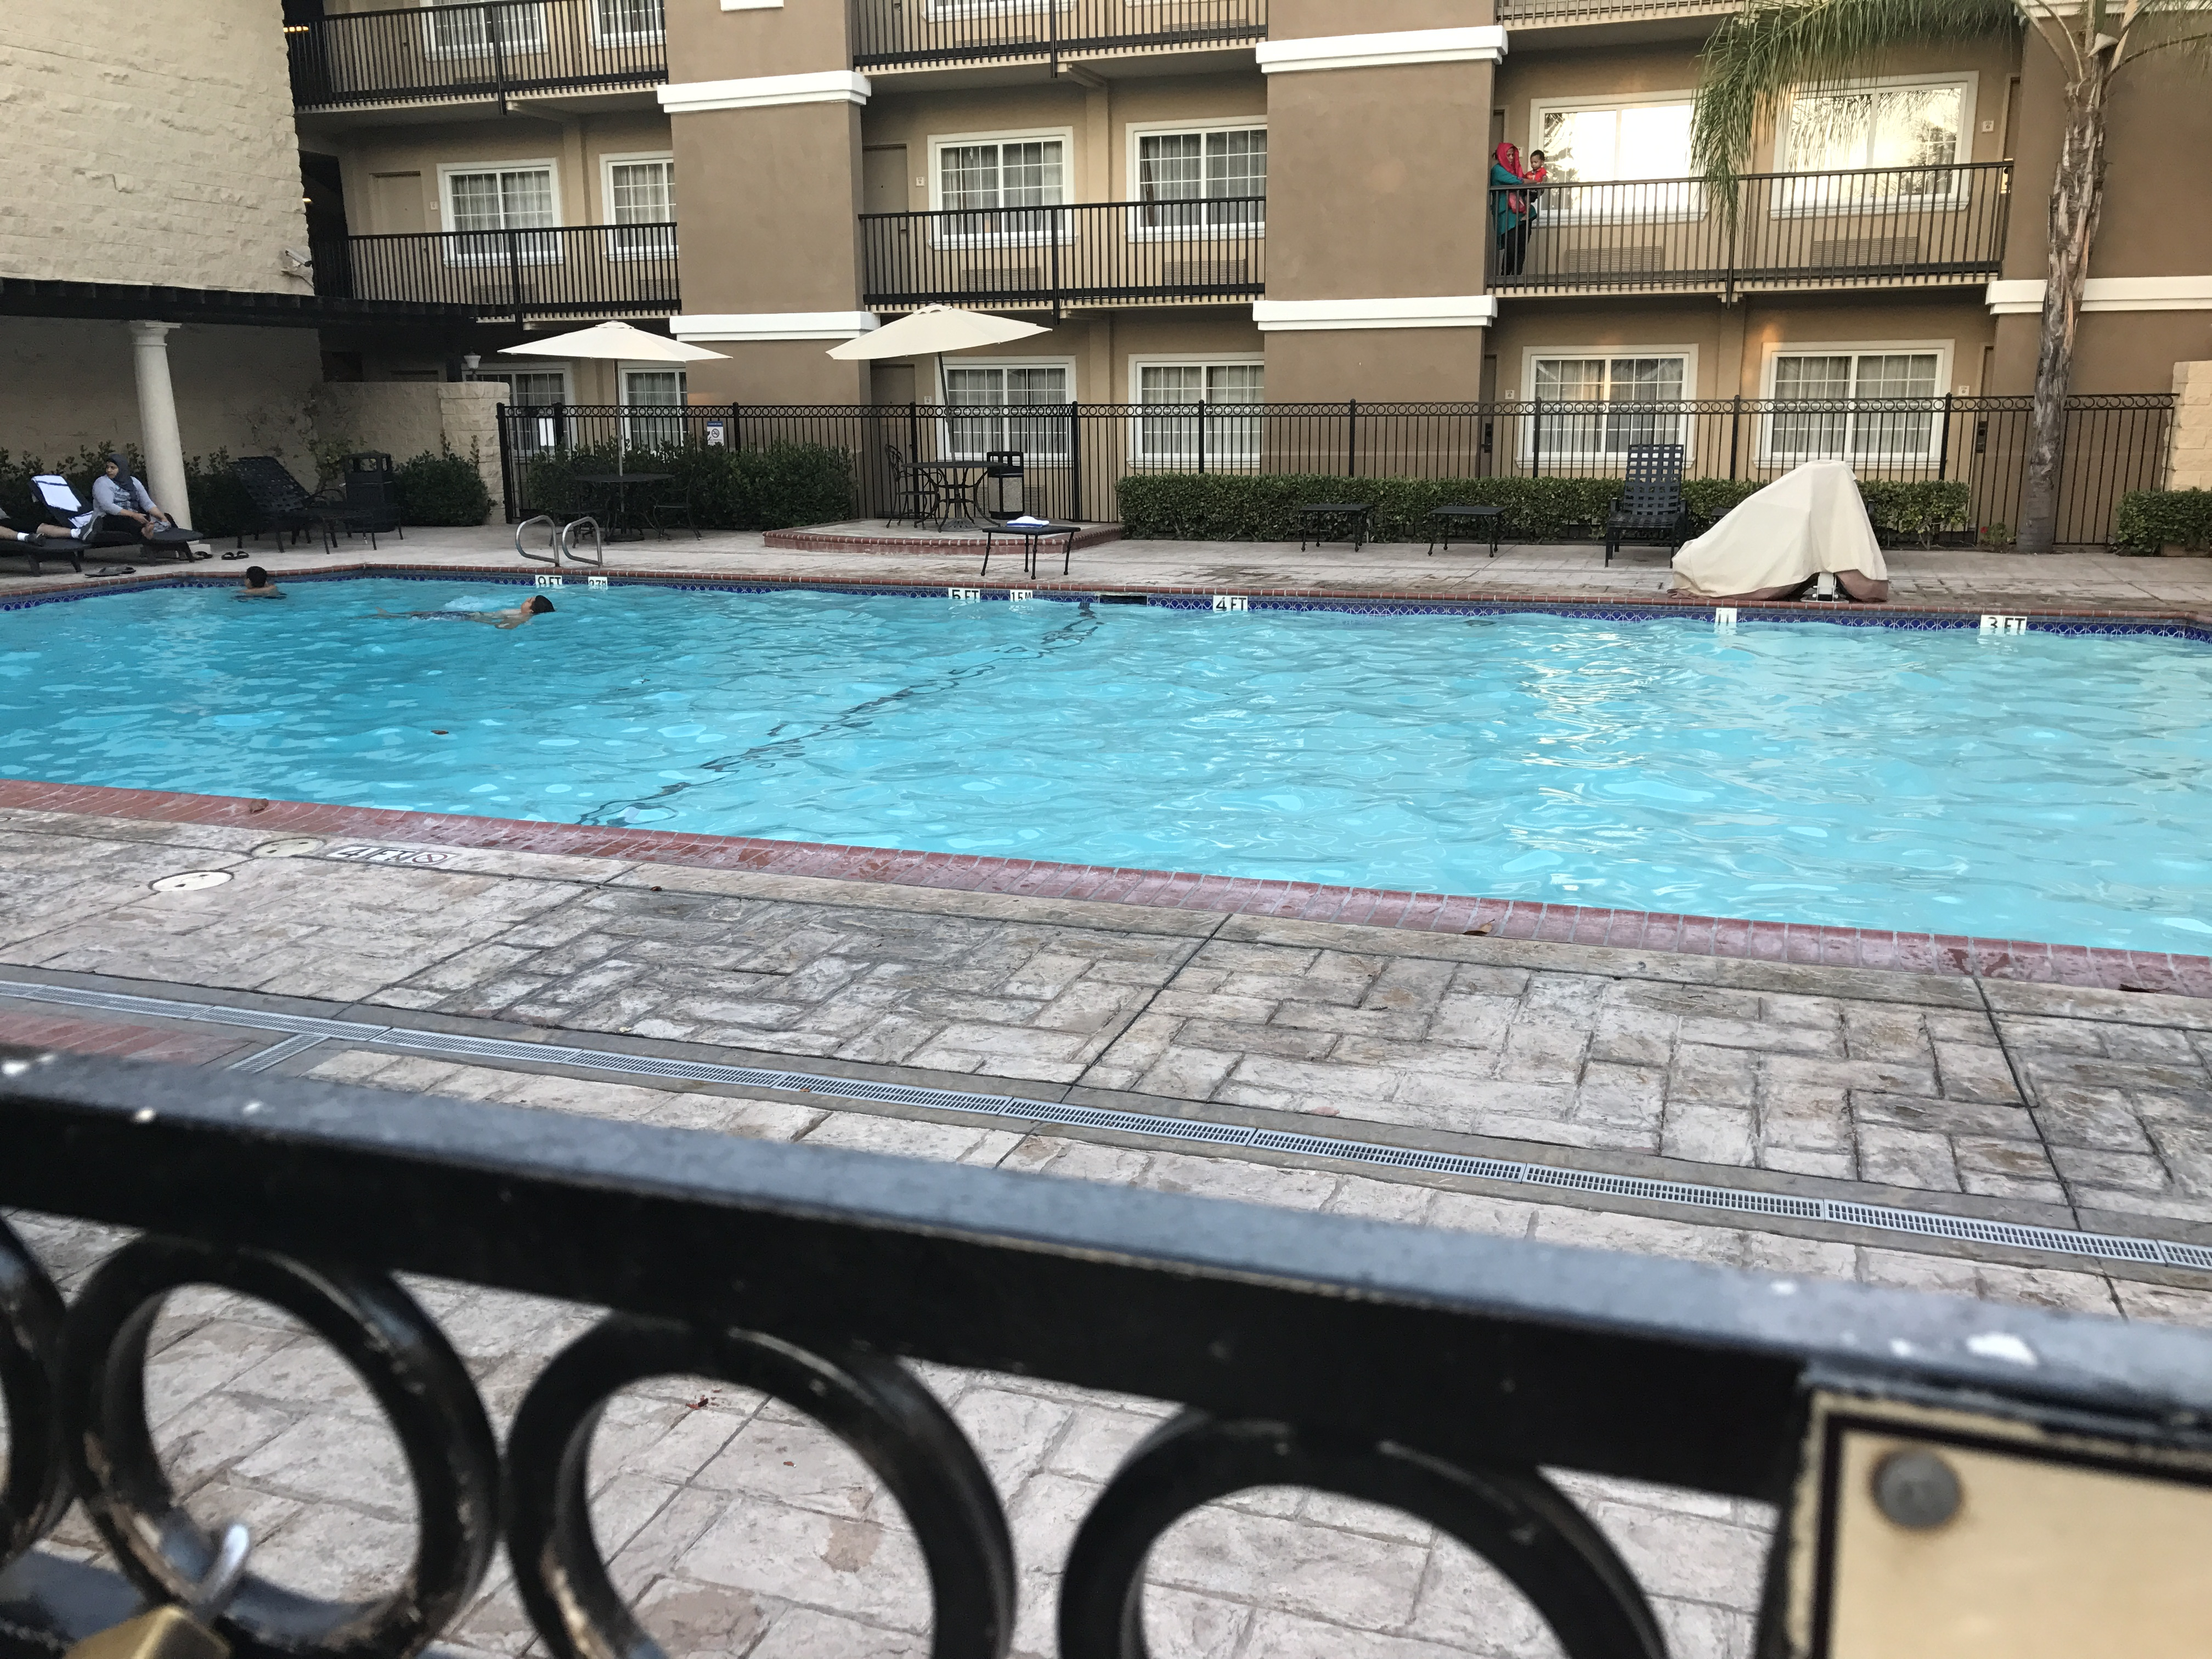 HOTEL REVIEW – The Hotel Fullerton Anaheim   Reviews for Families